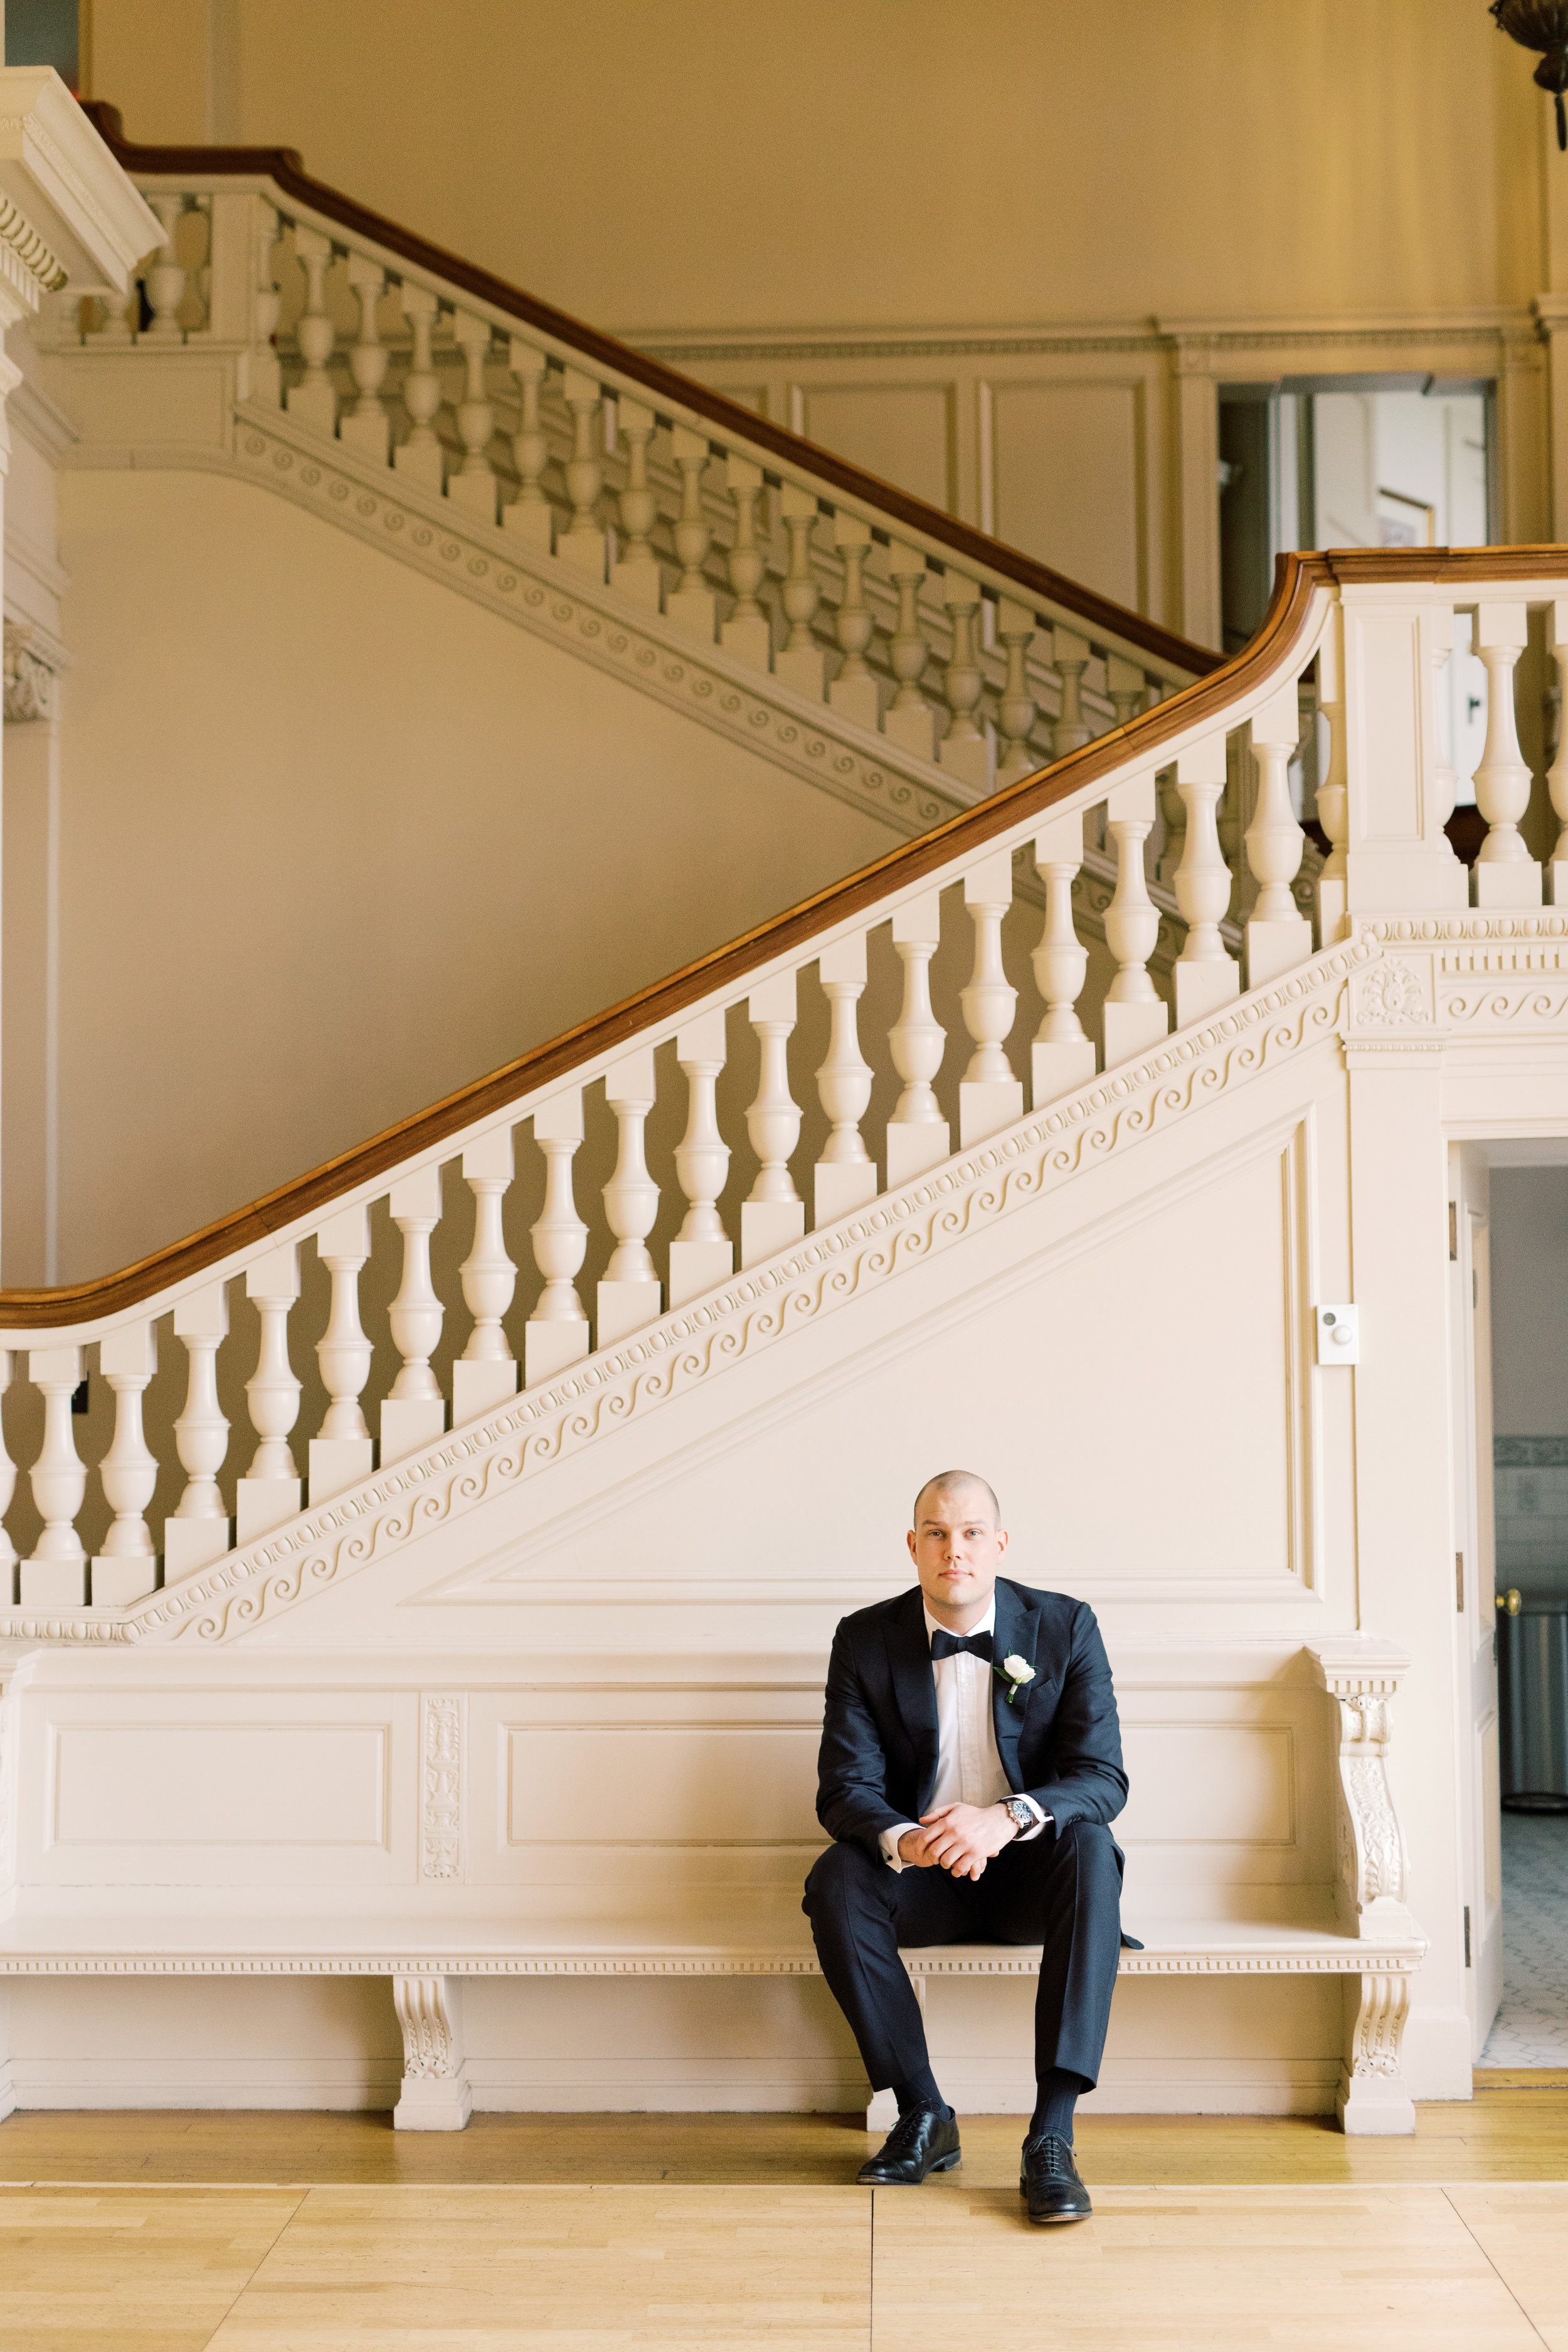 The grand staircase made for an impactful statement for portraits with this classic groom from this romantic and classic wedding day for their french inspired green and white Cairnwood Estate wedding